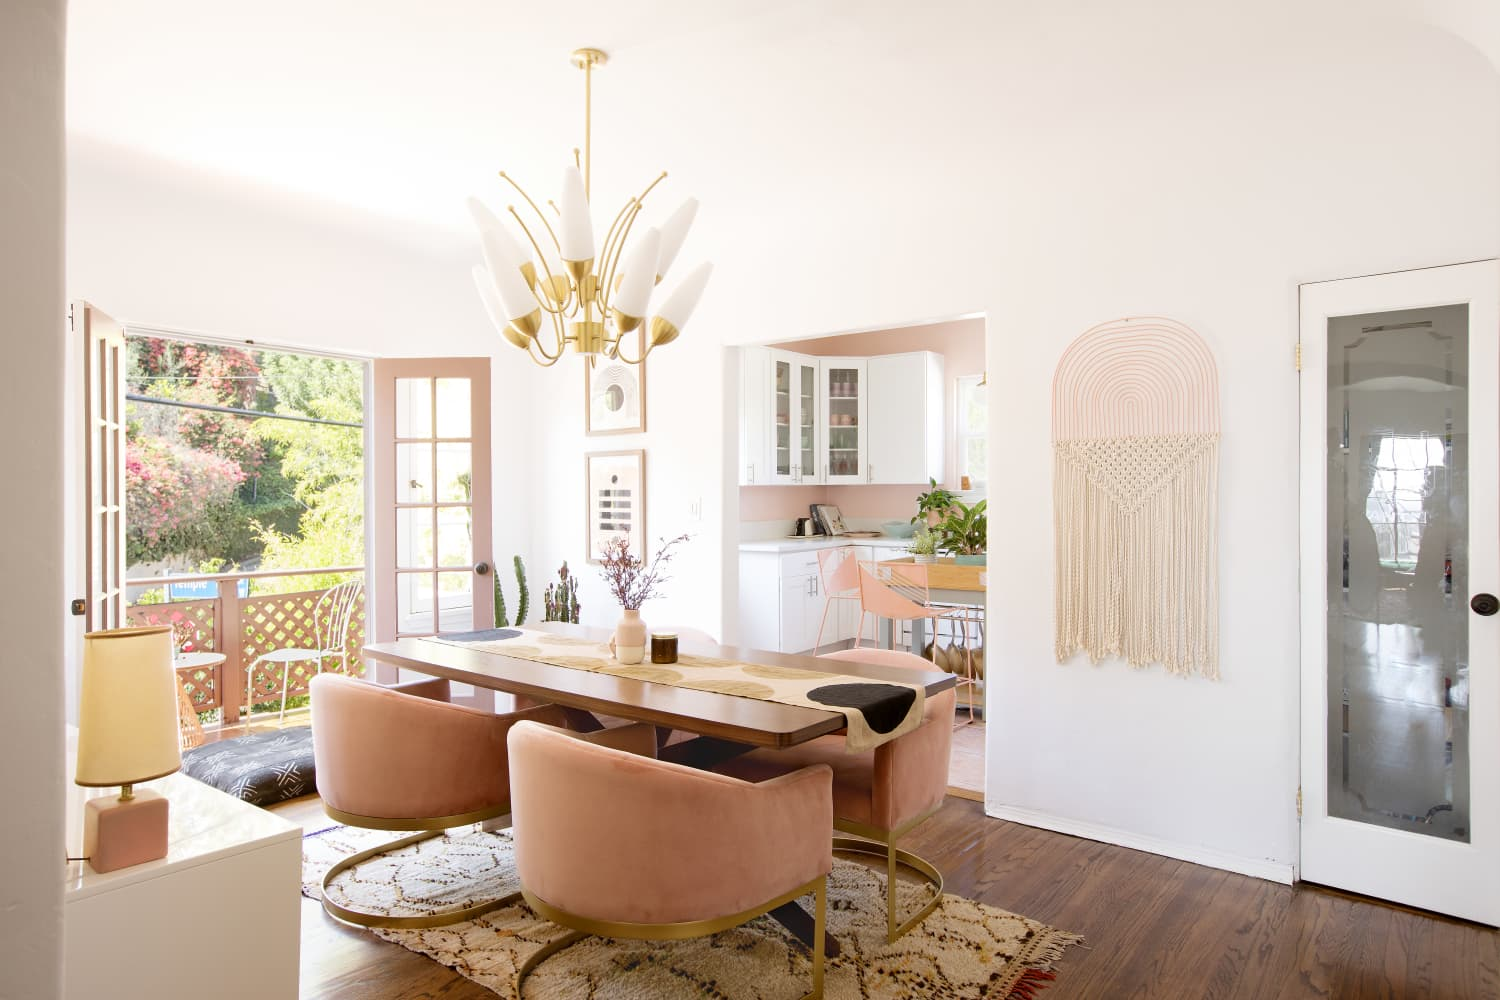 4 Ways to Make Your Dining Table Look More Expensive, According to Real Estate Experts